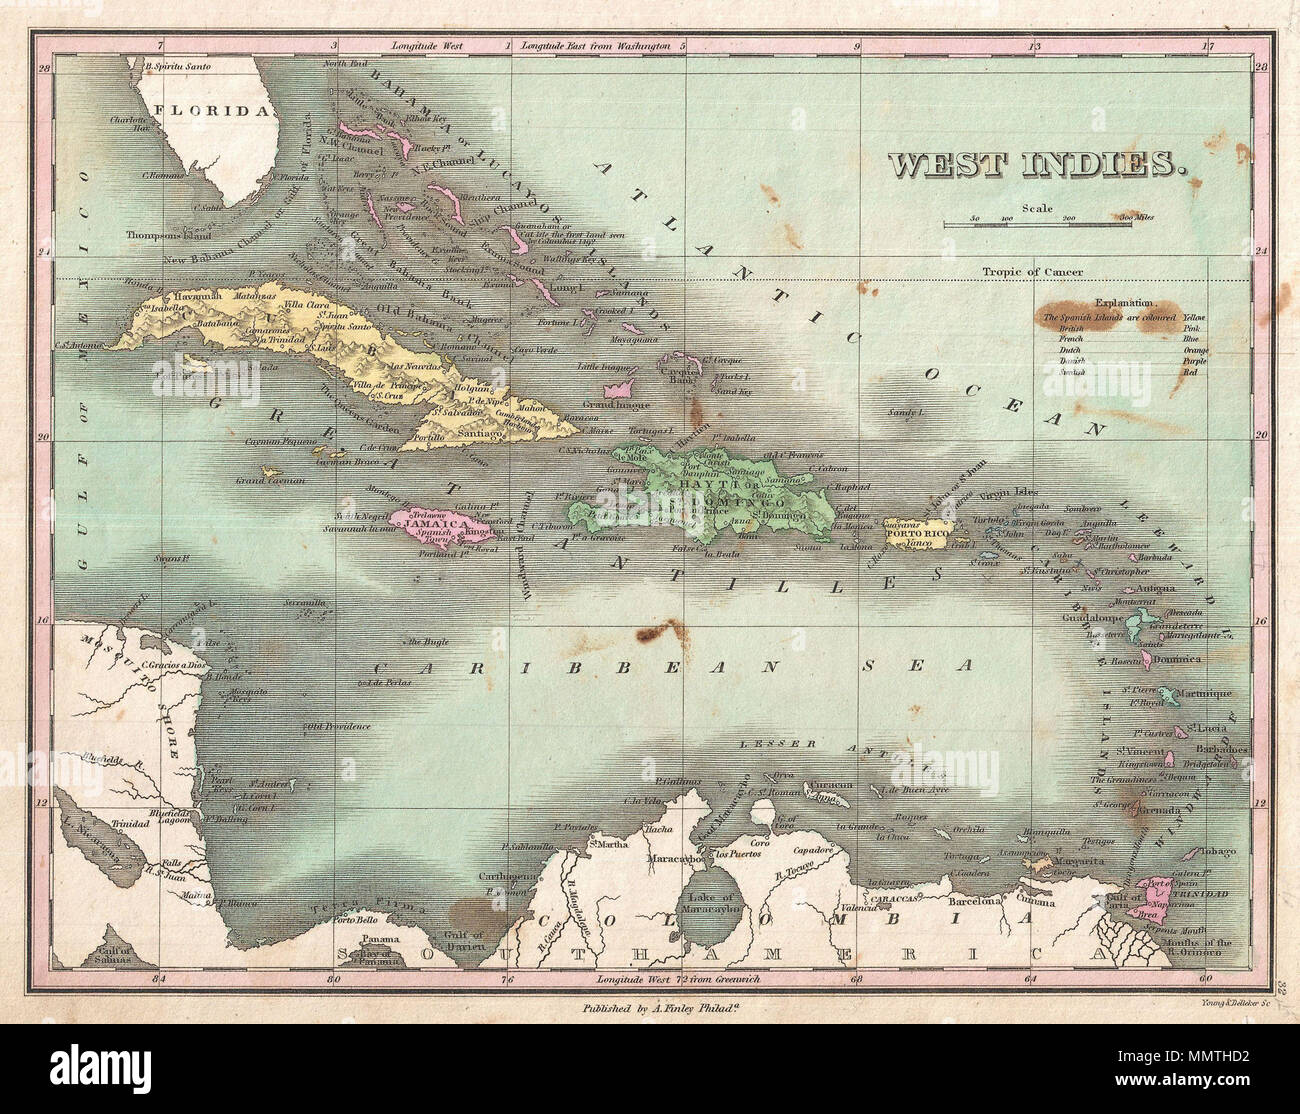 .  English: This is Finley's desirable 1827 map of the West Indies and Caribbean. Shows the Greater and LEsser Antilles as well as the Bahamas and portions of the Spanish Main. Islands are color coded according to their European claimants. Shows cities, forts, bays, rivers, roads, and some topographical features. It the Bahamas, Finley identifies Guanaham or Cat Isle, the first land in the America to be sighted by Columbus. Mile scales and title in upper right quadrant. Engraved by Young and Delleker for the 1827 edition of Anthony Finley's General Atlas .  West Indies.. 1827 (undated). 1827 F Stock Photo